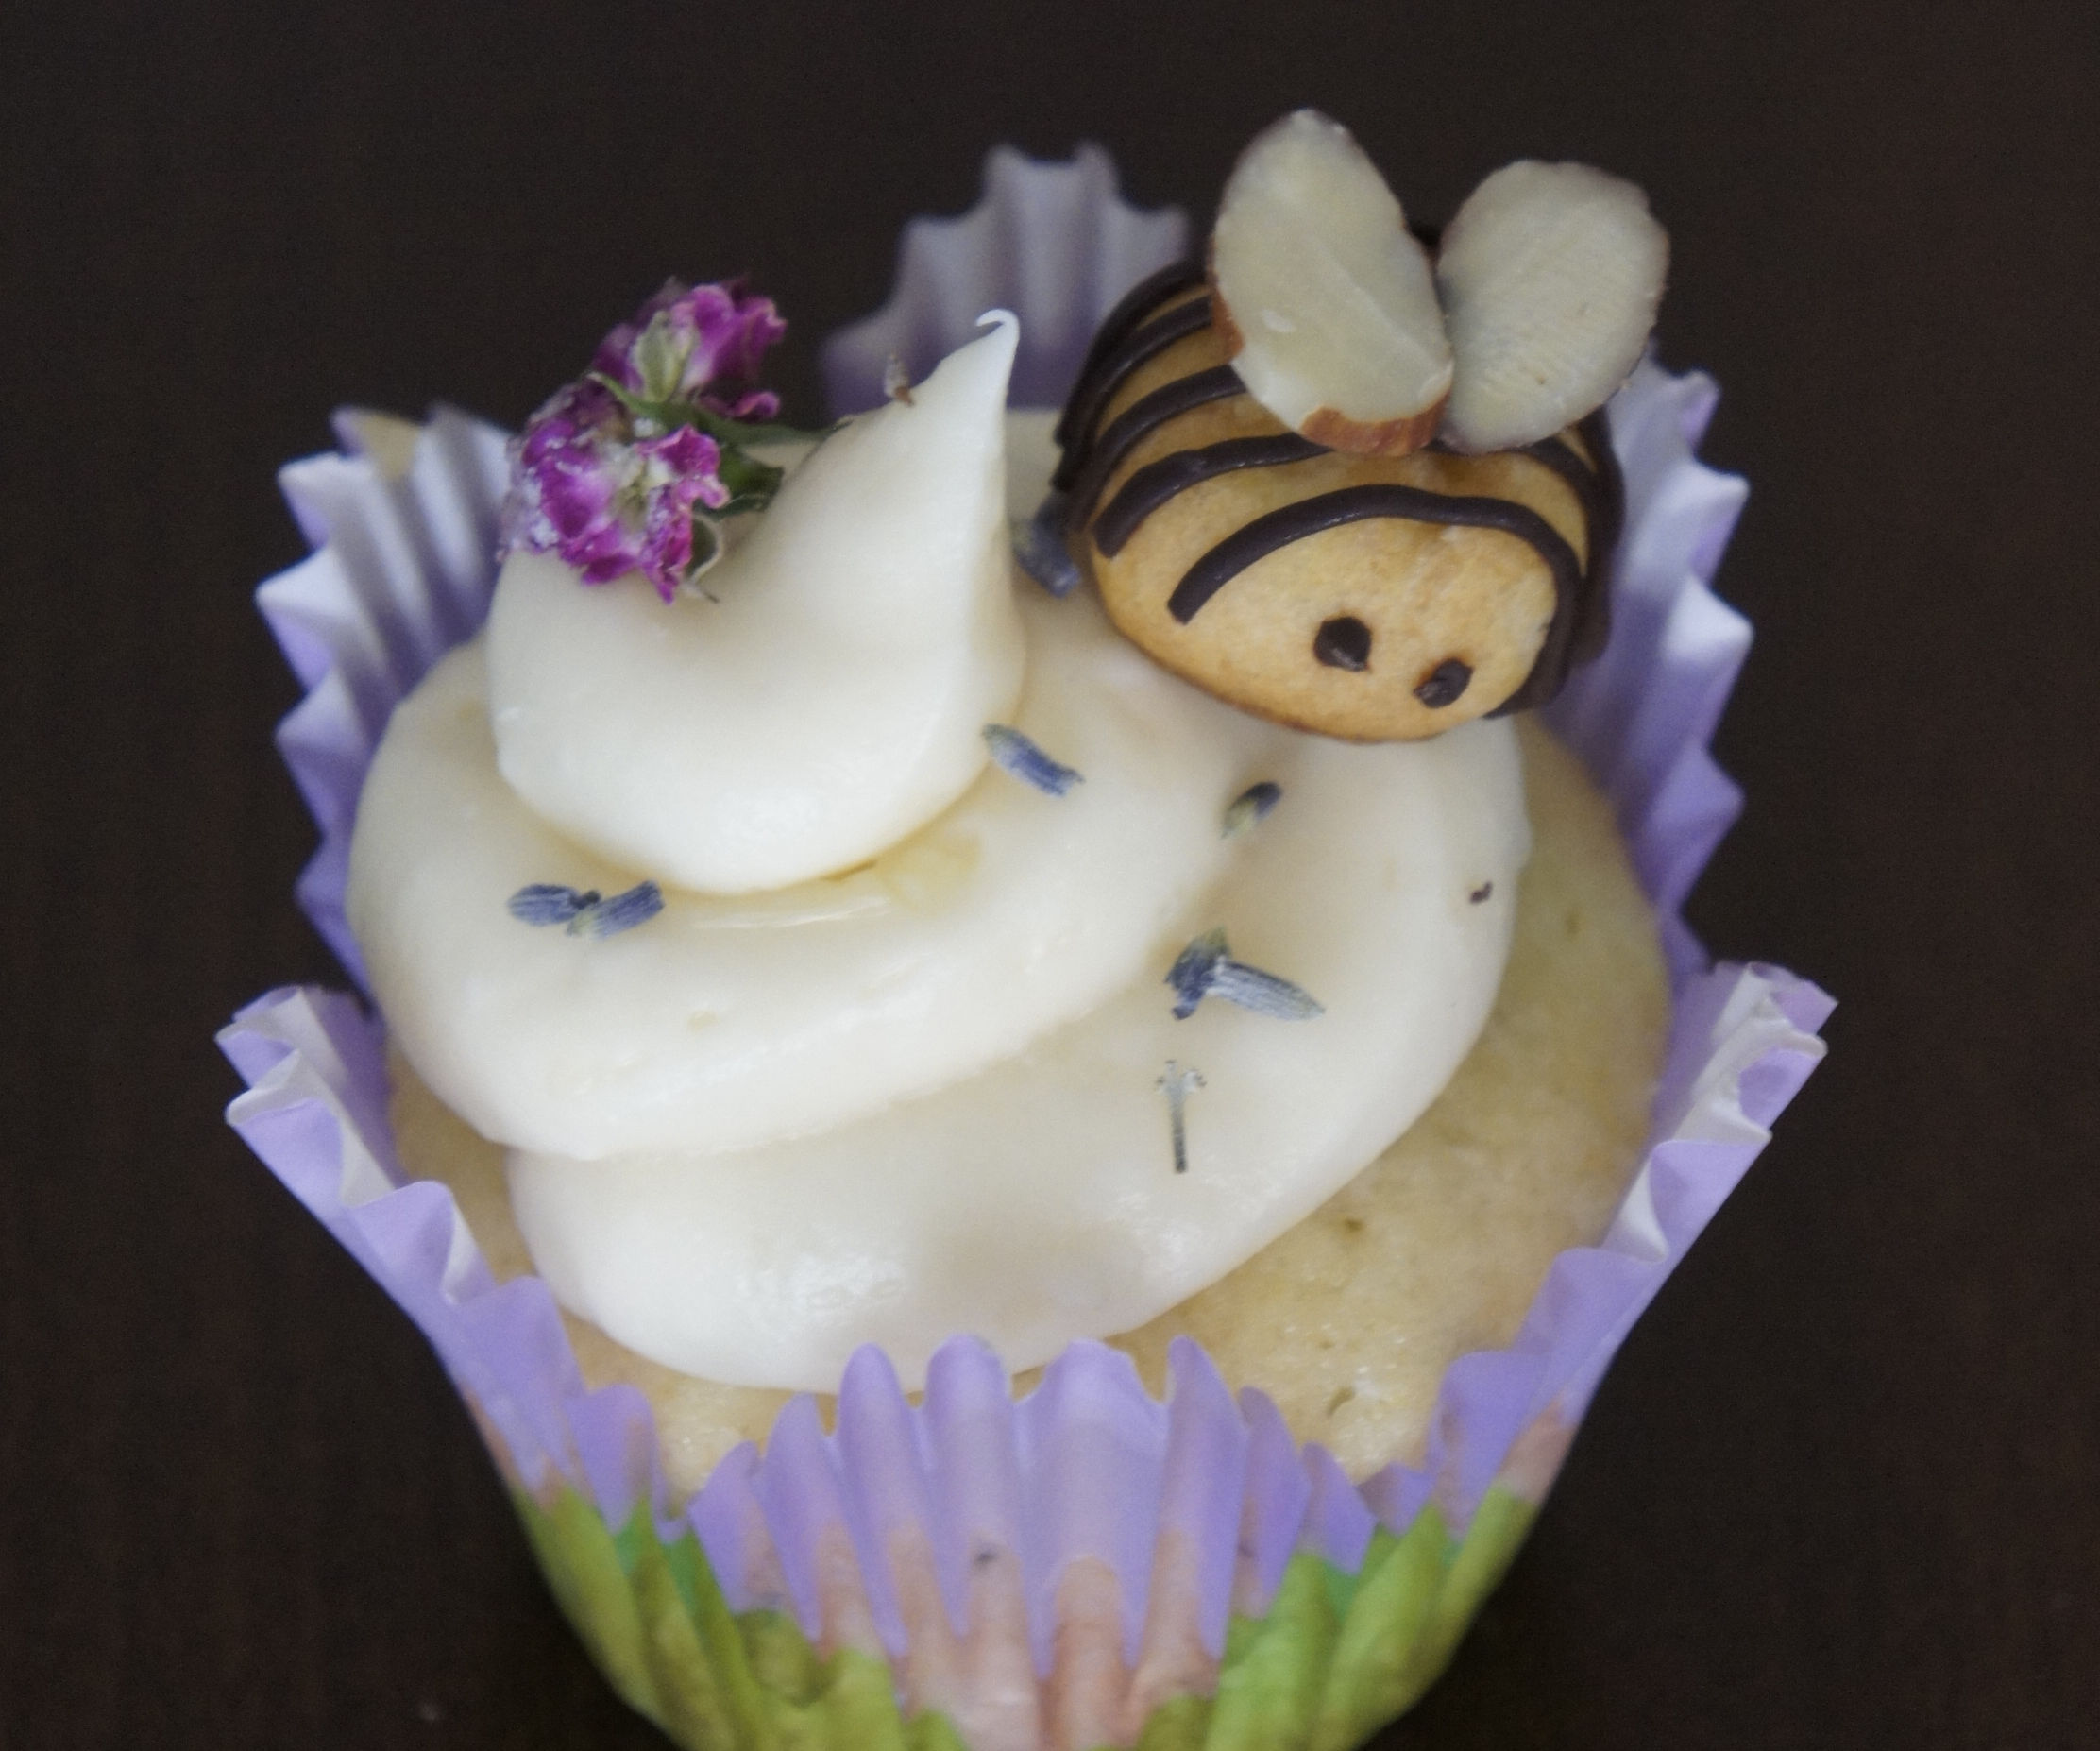 Lemon-Lavender Cupcakes w/ Honey Frosting & Cream Puff Bees